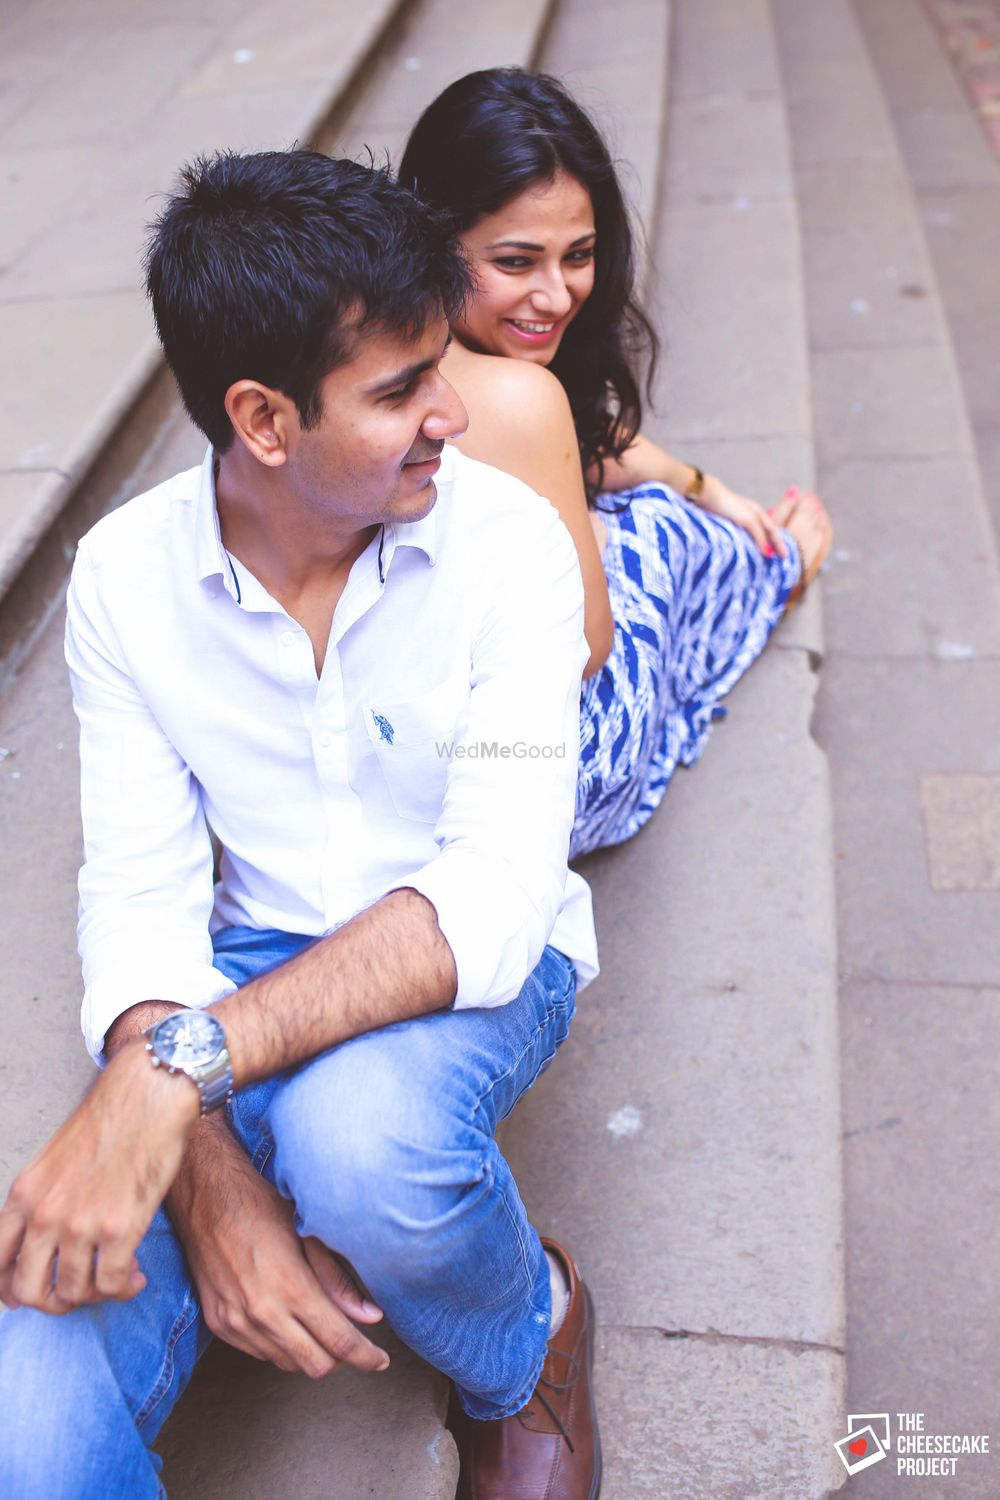 Photo From Sanchita + Nikhil ~ A Pre-Wedding Gift! - By The Cheesecake Project